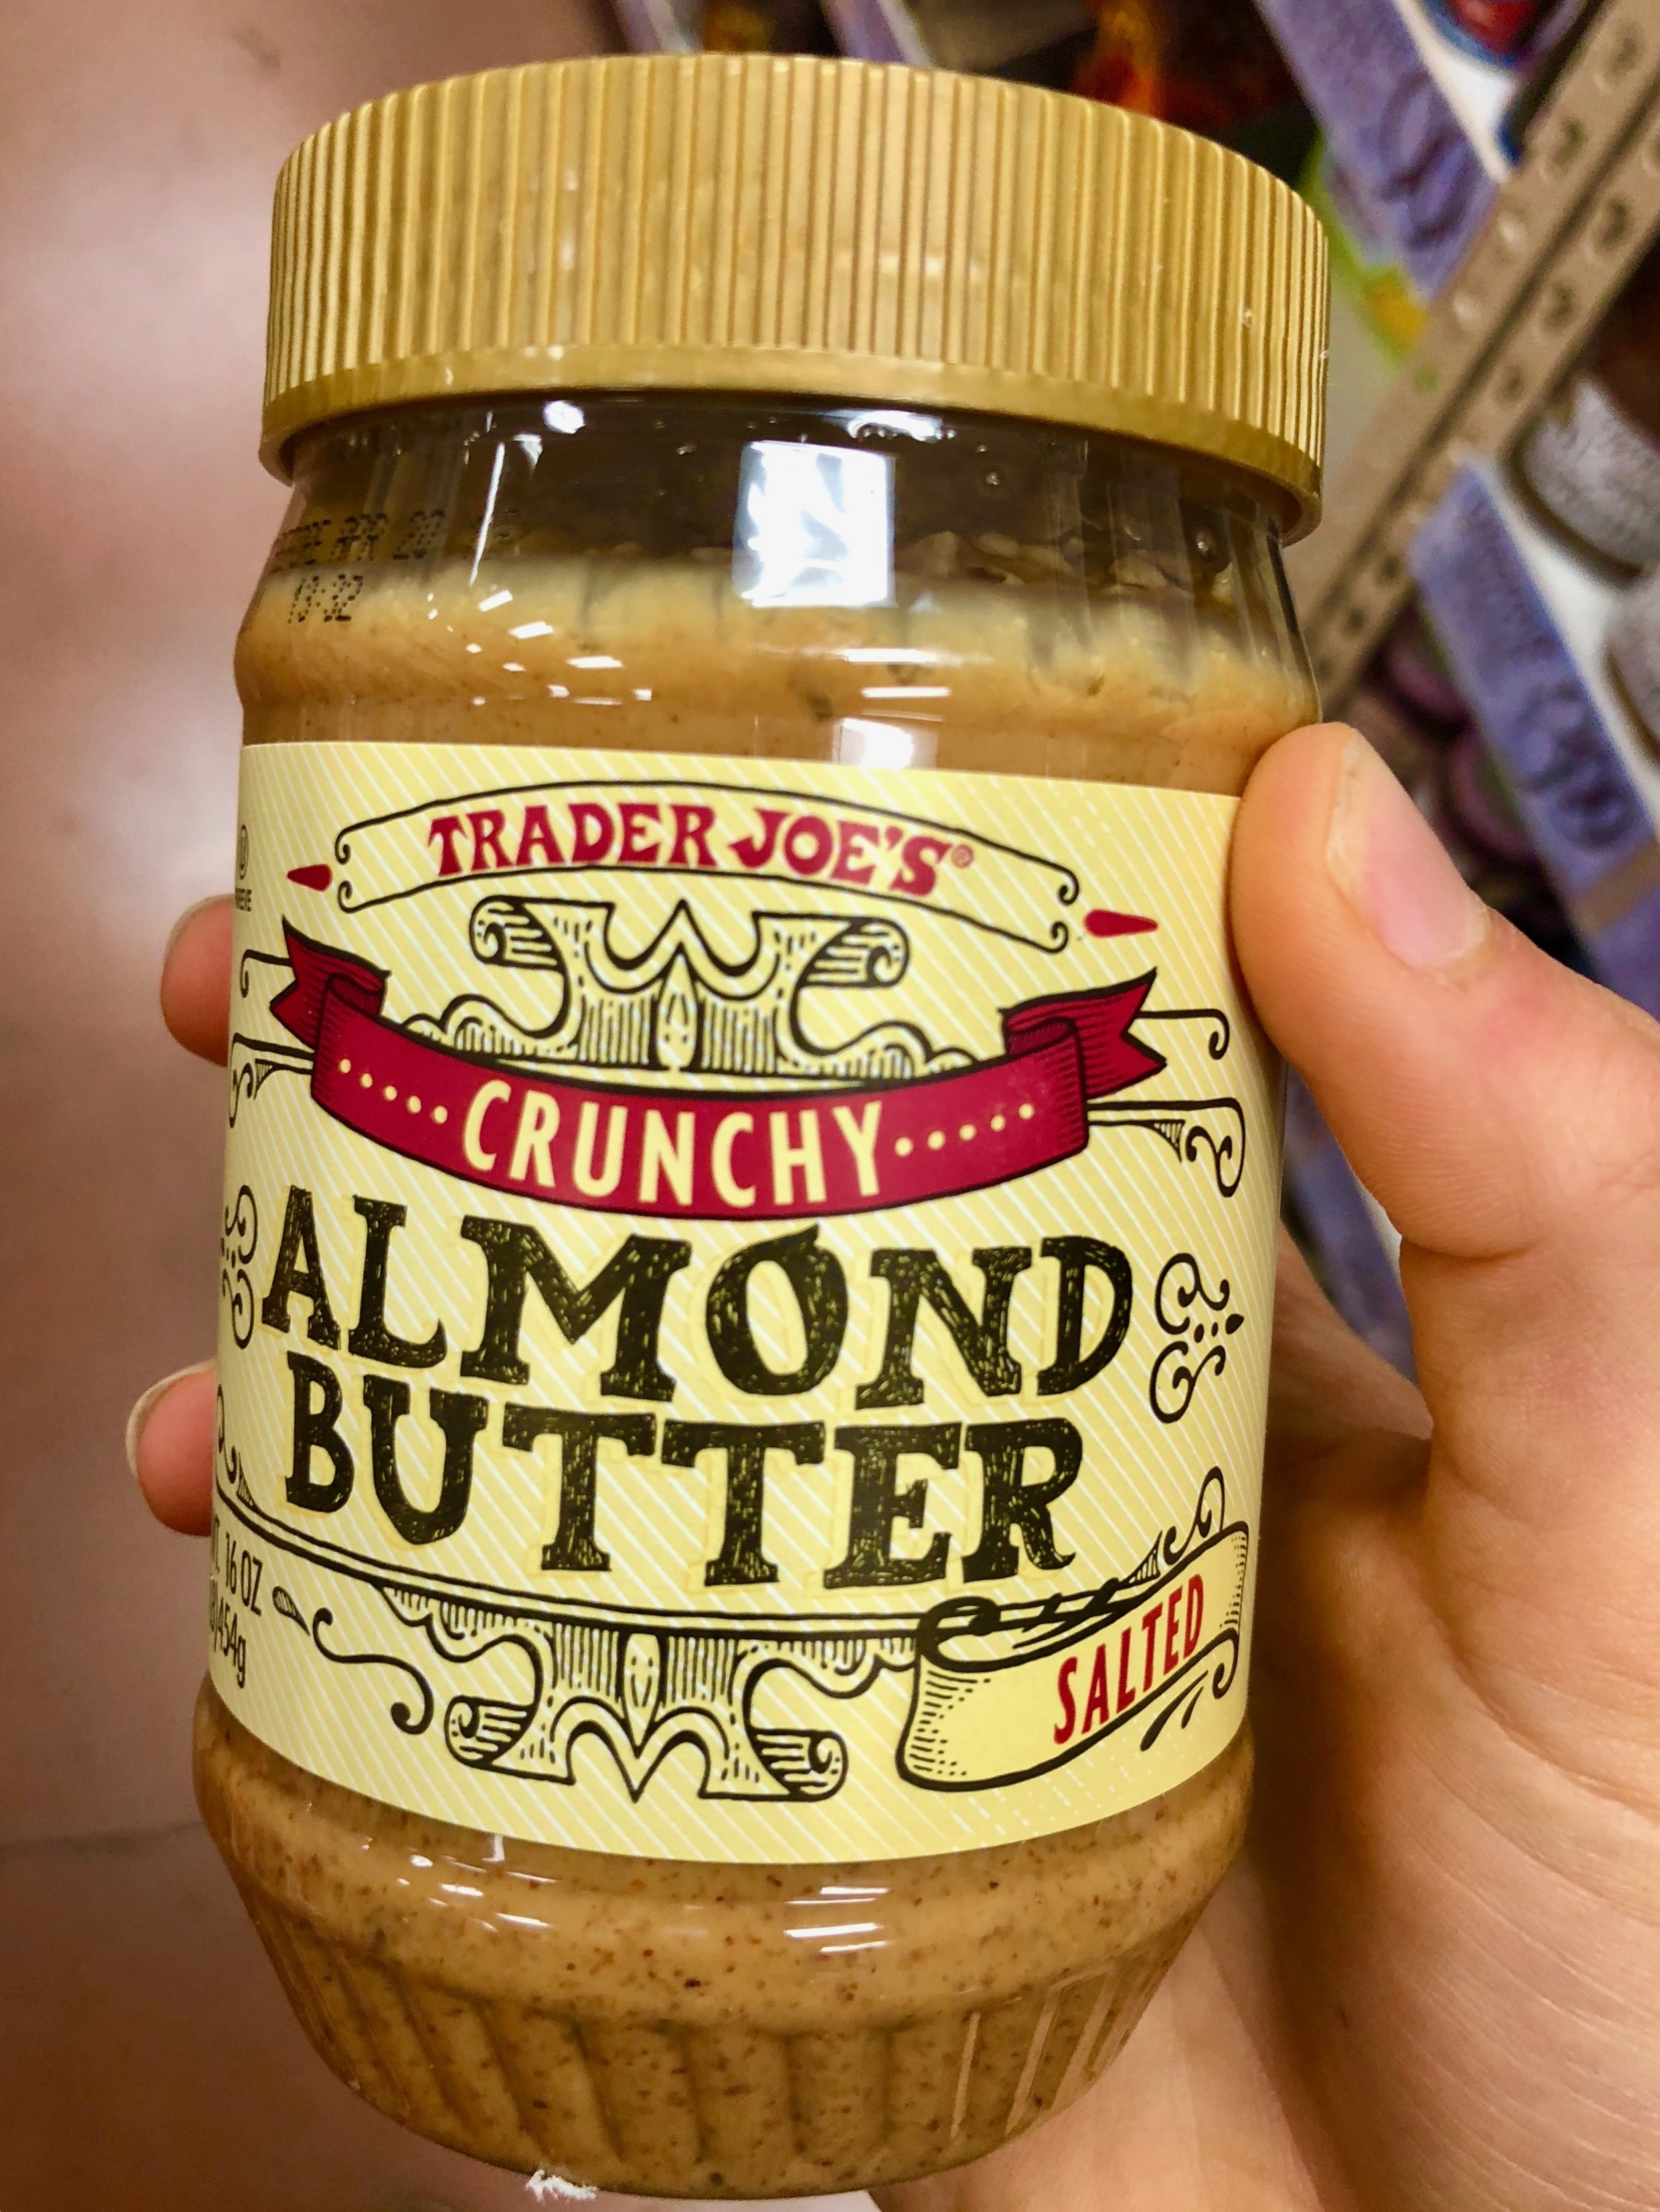 Y'ALL. TJ's Crunchy (yes, crunchy. don't @ me) Almond Butter. If you know me, you know my love for all things nut butter is FIERCE. Like on the verge of addiction, but I ain't mad about it. So I've had my fair share of nut butters in my day and this is BY FAR the BEST one yet. I can't explain it and I don't know how they do it b/c it's just almonds and salt?! but they do it and they do it WELL. Also  way cheaper than other almond butters I've found. Like $4.99 cheap in comparison to like $10.99. Sorry I just cannot with that price. Broke or not.